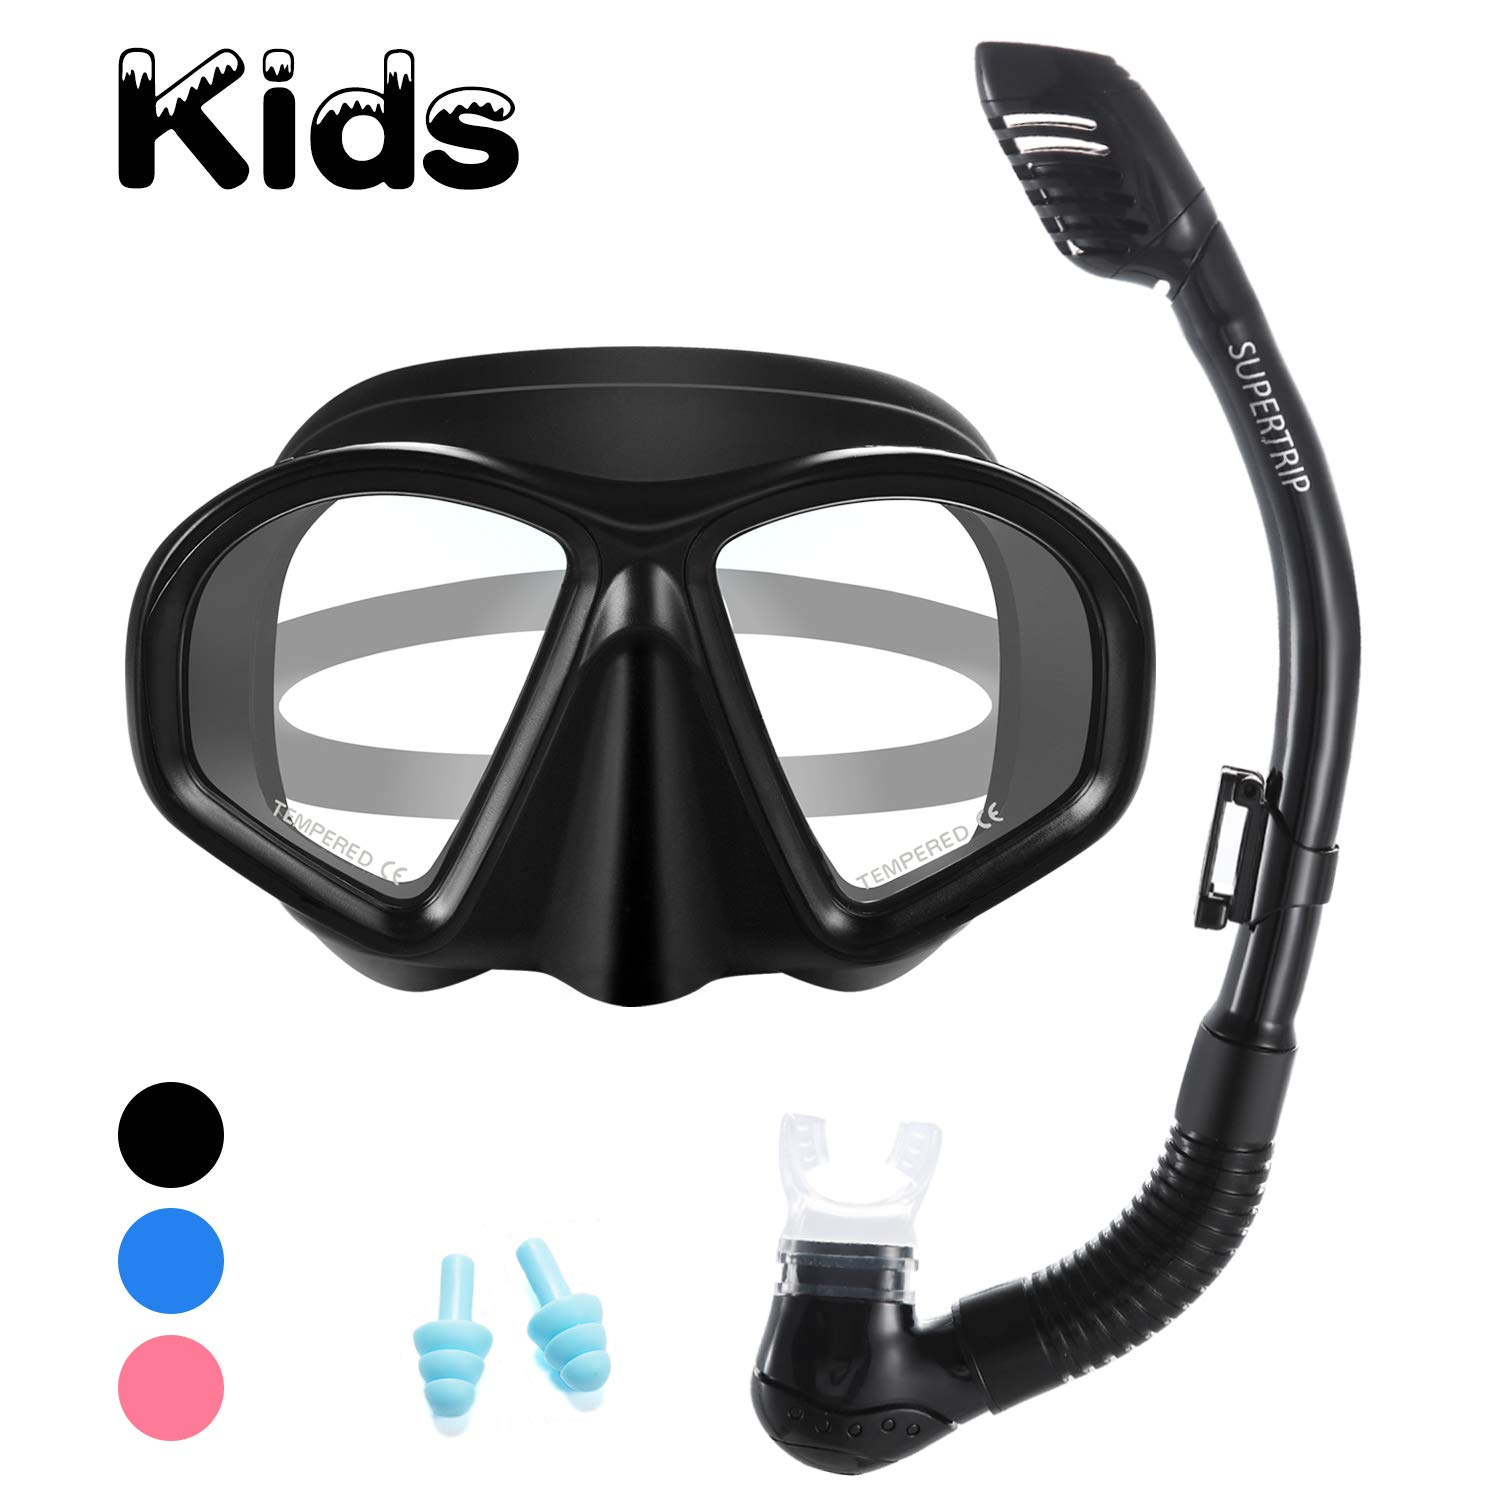 Supertrip Kids Snorkel Set-Scuba Dry Top Diving Mask Anti-Leak Impact Resistant Panoramic Tempered Glass Easybreath Snorkeling Packages Professional Swimming Gear for Youth Boys and Girls (Black) by Supertrip